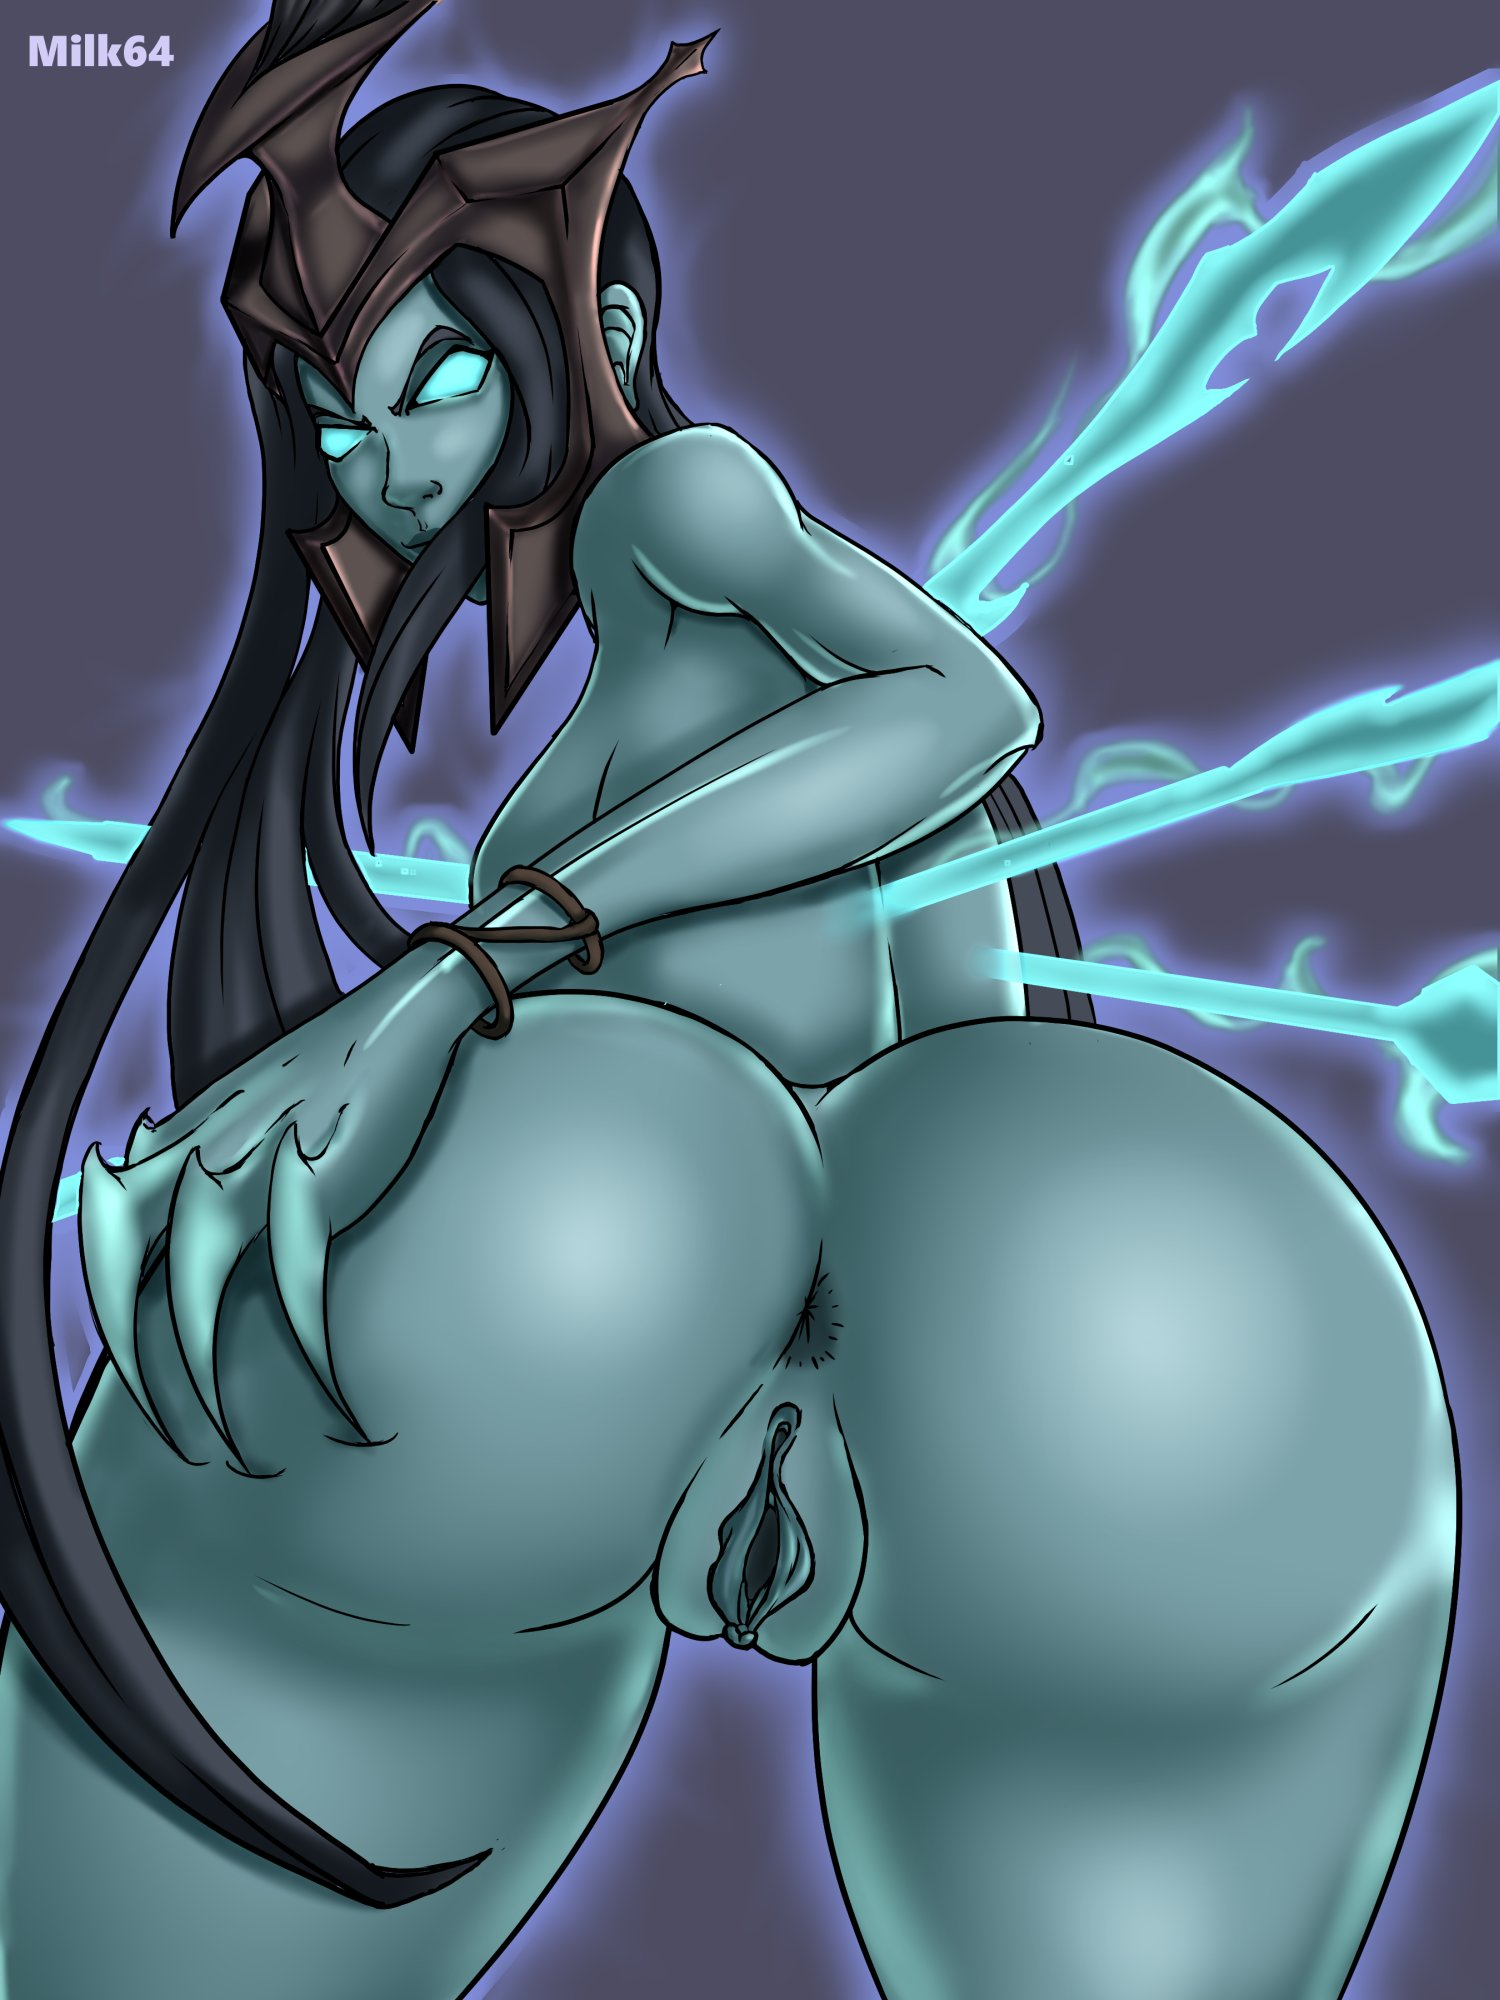 3680230 - Kalista League_of_Legends Milk64